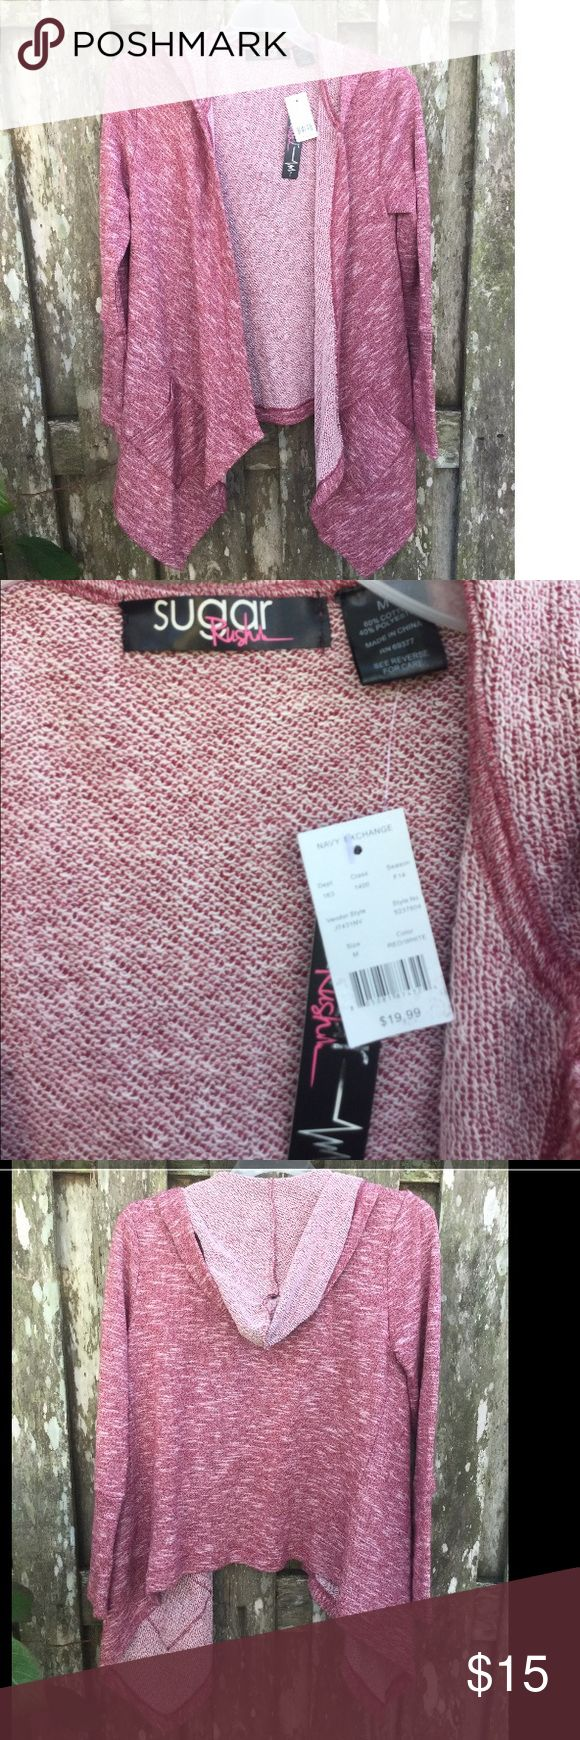 Sugar rush textured jacket New with tags!! This pink jacket is thick and warm. The front is longer than the back. It has pockets and a hood. There is not a draw string. The jacket was purchased for $20 at the navy exchange, but probably cost more anywhere else, which is why I'm asking for a bit more. Please negotiate though. This is just my starting price! Jackets & Coats